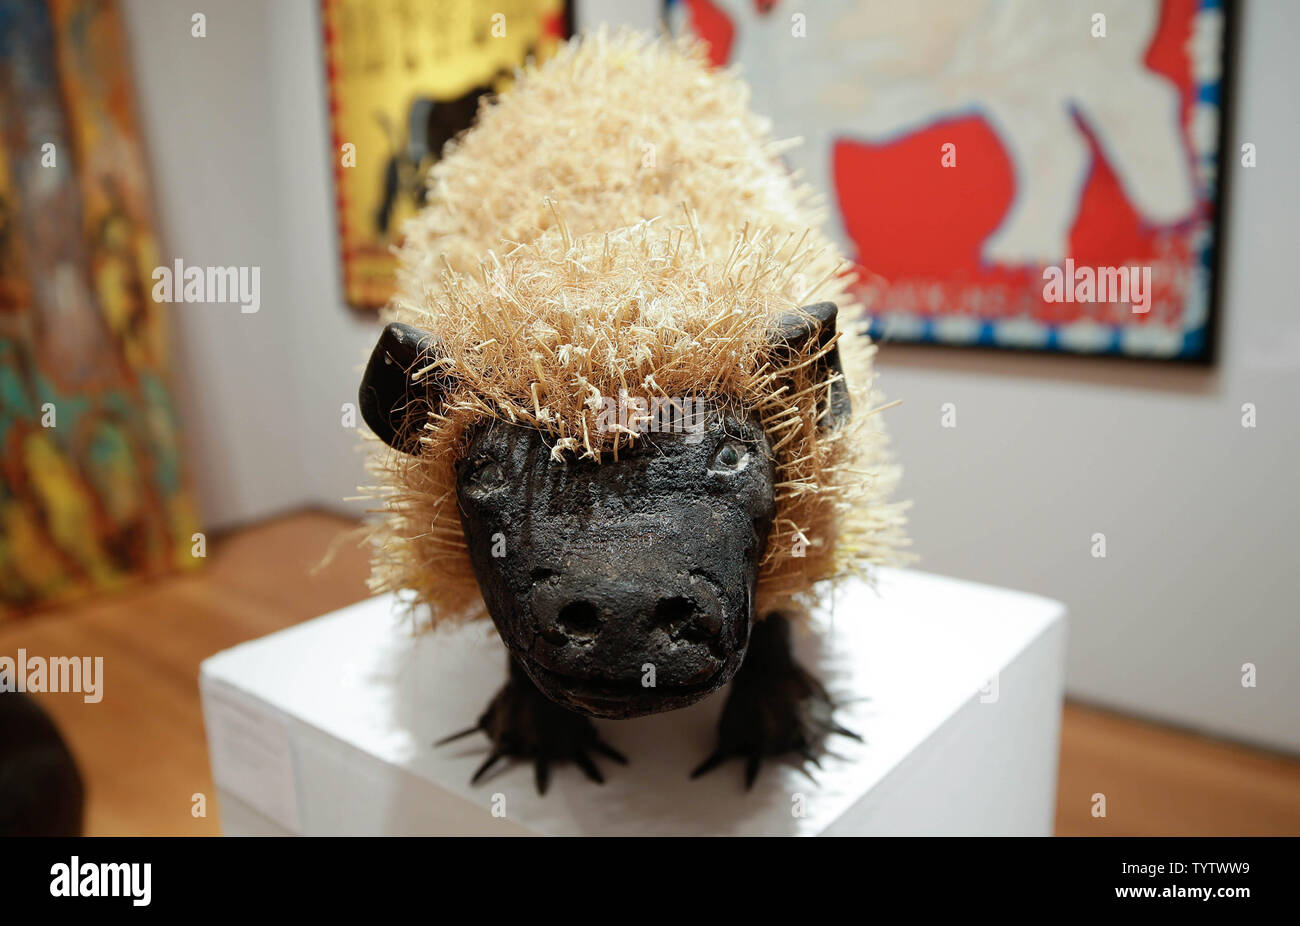 Porcupineby Felipe Benito Archuleta is on display at a press preview of an upcoming auction titled 'Outsider and Vernacular Art' at Christie's in New York City on January 12, 2019. The auction featuring Henry Darger's '148 At Jennie Richee During fury of storm are unsuccessfully attached (sic) by Glandelinians / 149 At Jennie Richee narrowly escape capture but Blengins come to rescue, double sided' , estd $250,000 - $500,000 and Bill Traylor's 'Goat, Camel, Lion and Figures', estd $75,000 - $100,000 takes place at Christie's on January 18th.     Photo by John Angelillo/UPI - Stock Image